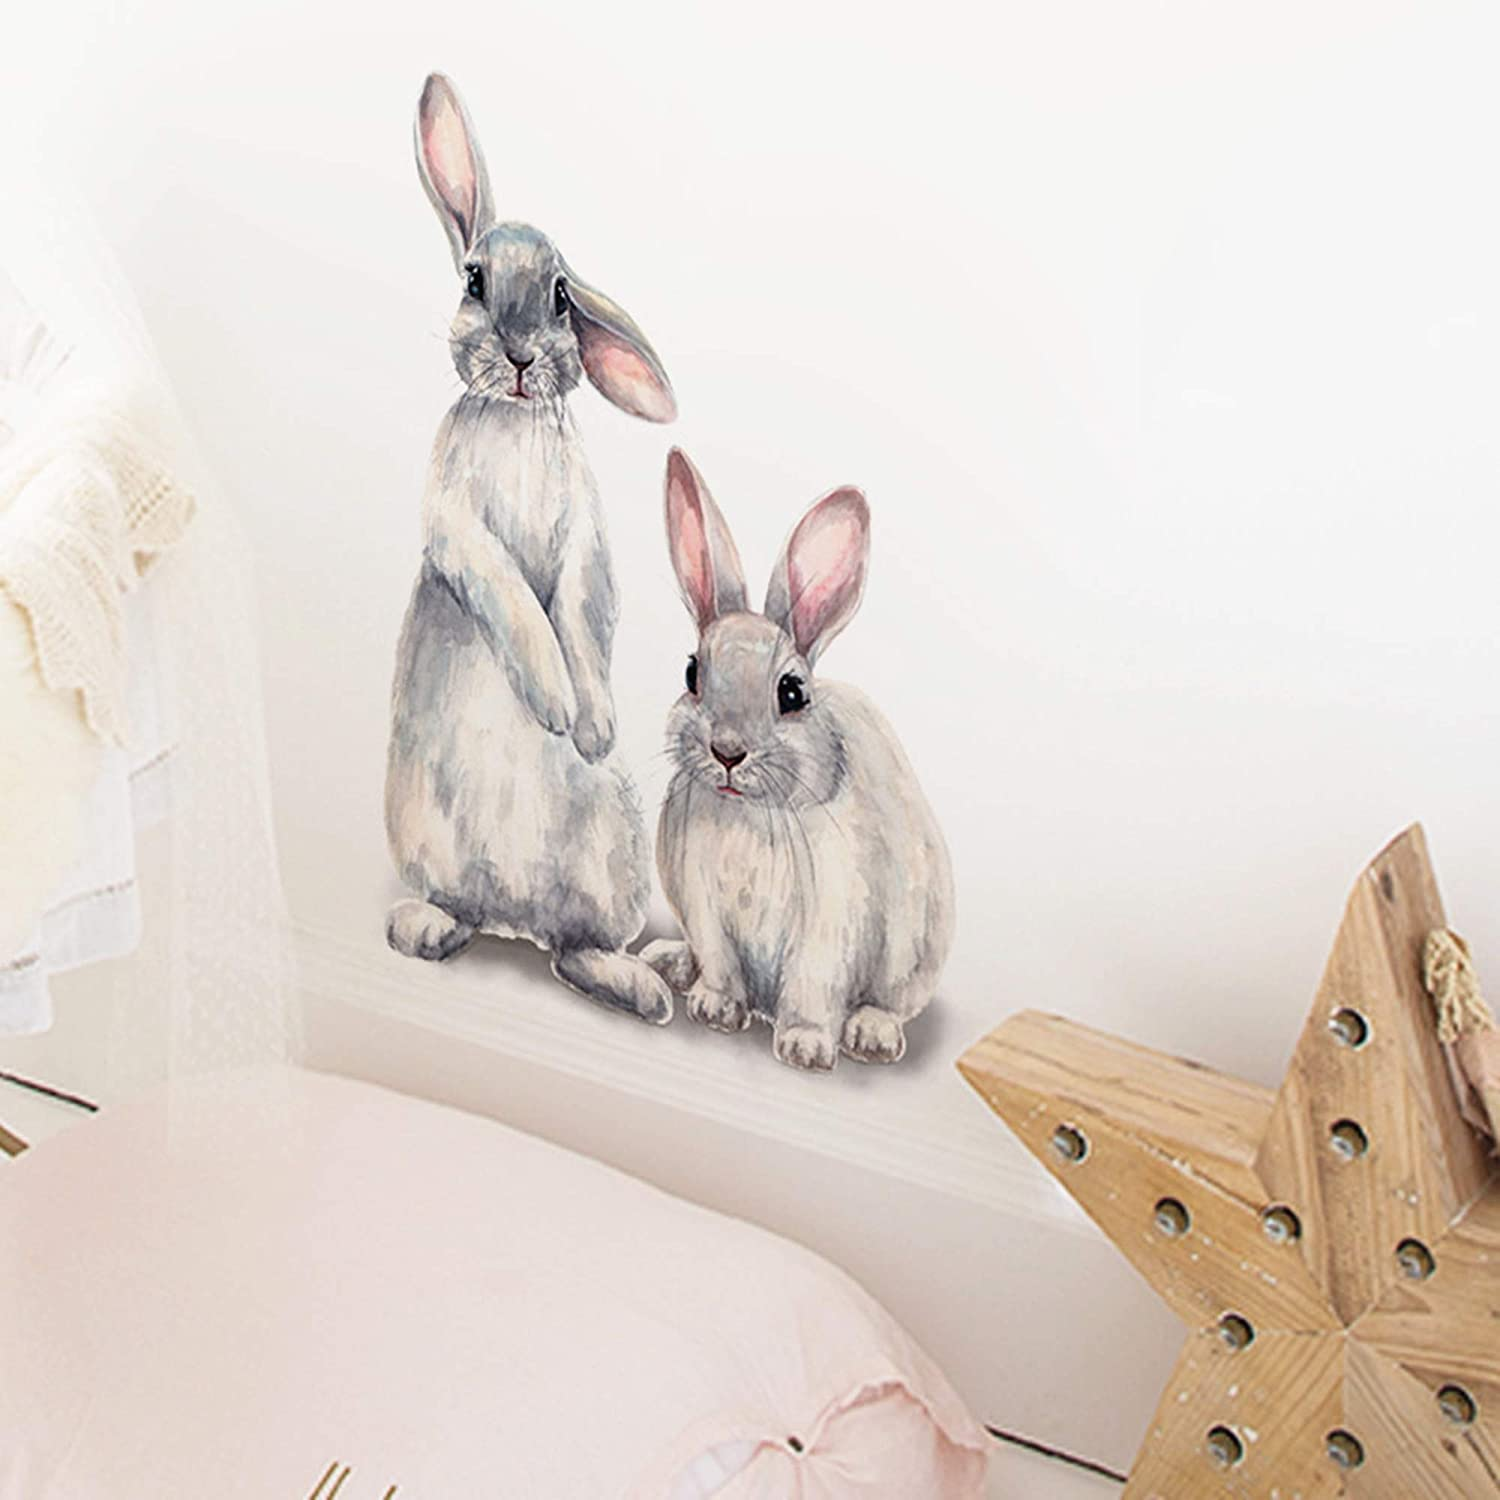 ROFARSO Lifelike Lovely Cute Two Bunnies Rabbits Animal 3D Vinyl Wall Stickers Removable Wall Decals Art Decorations Decor for Nursery Baby Bedroom Playroom Living Room Murals